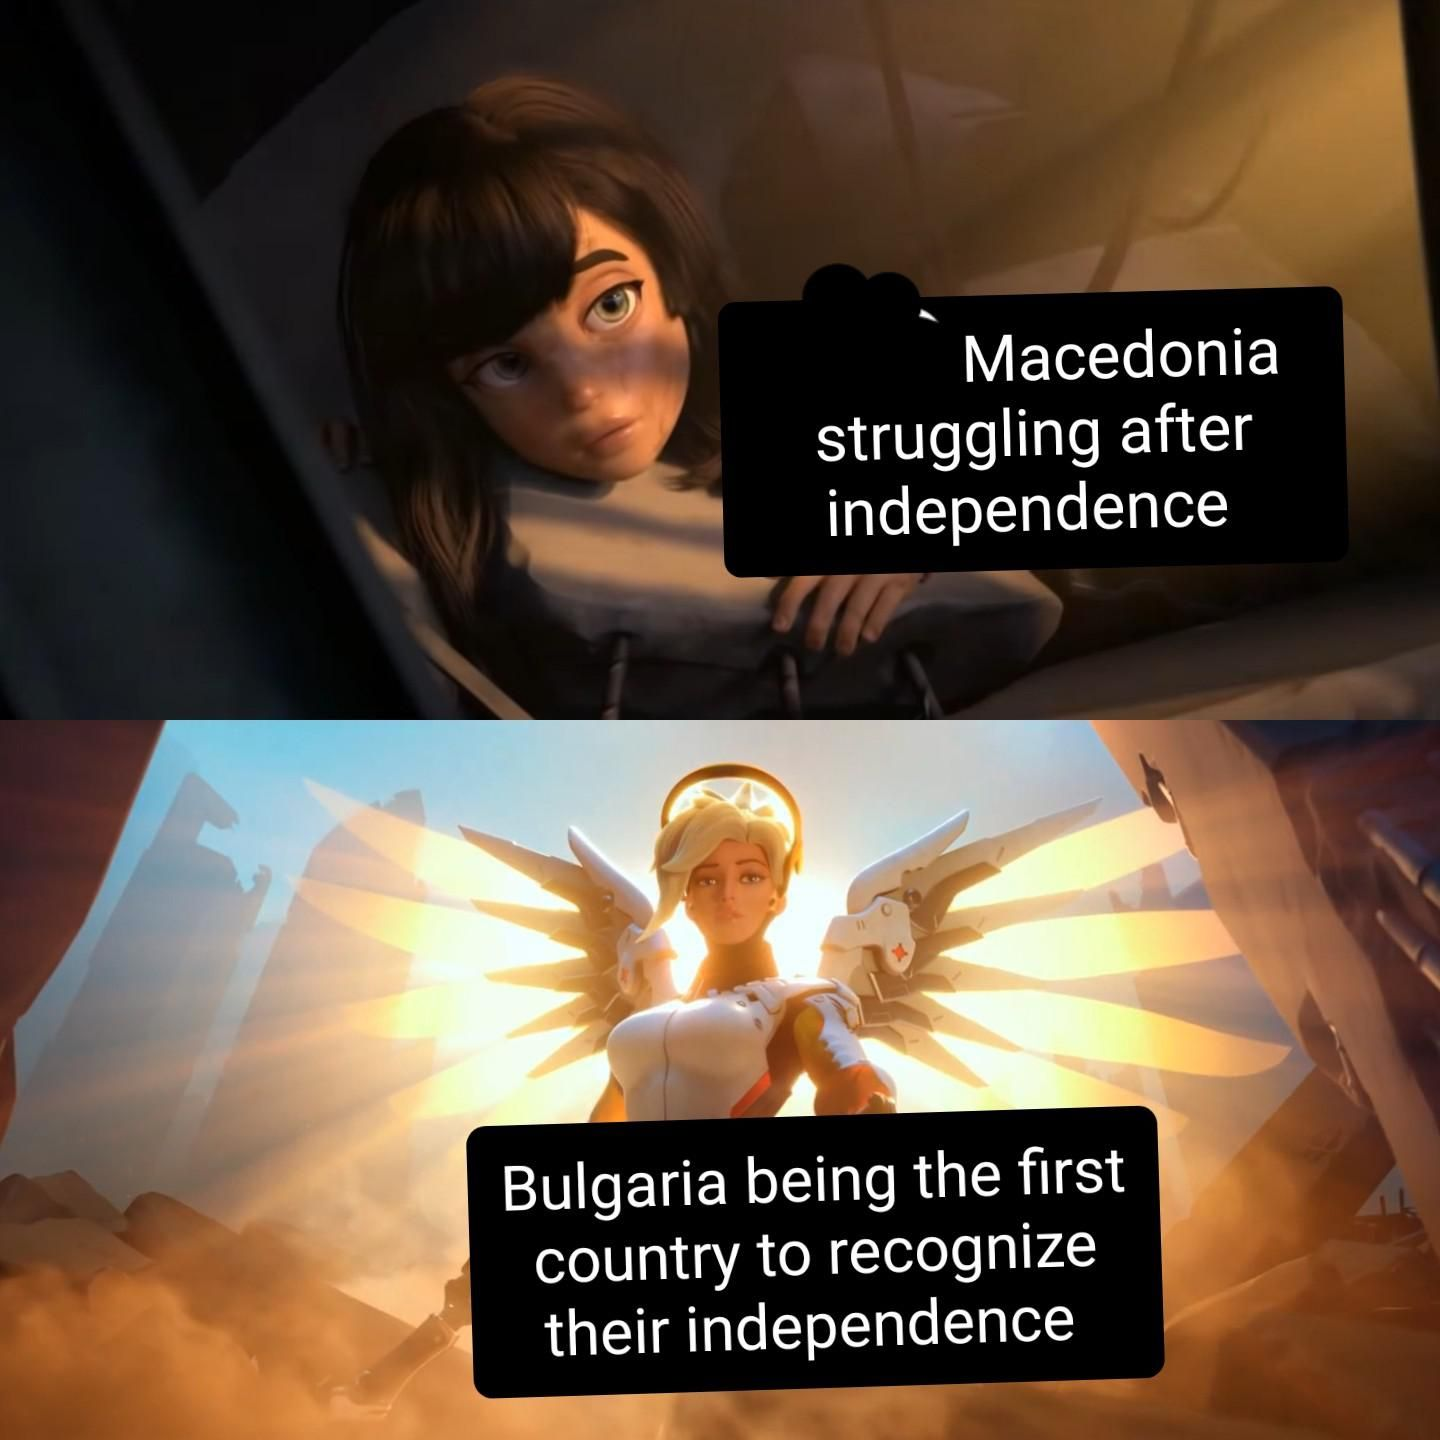 Making a meme of every country's history day 152: Macedonia